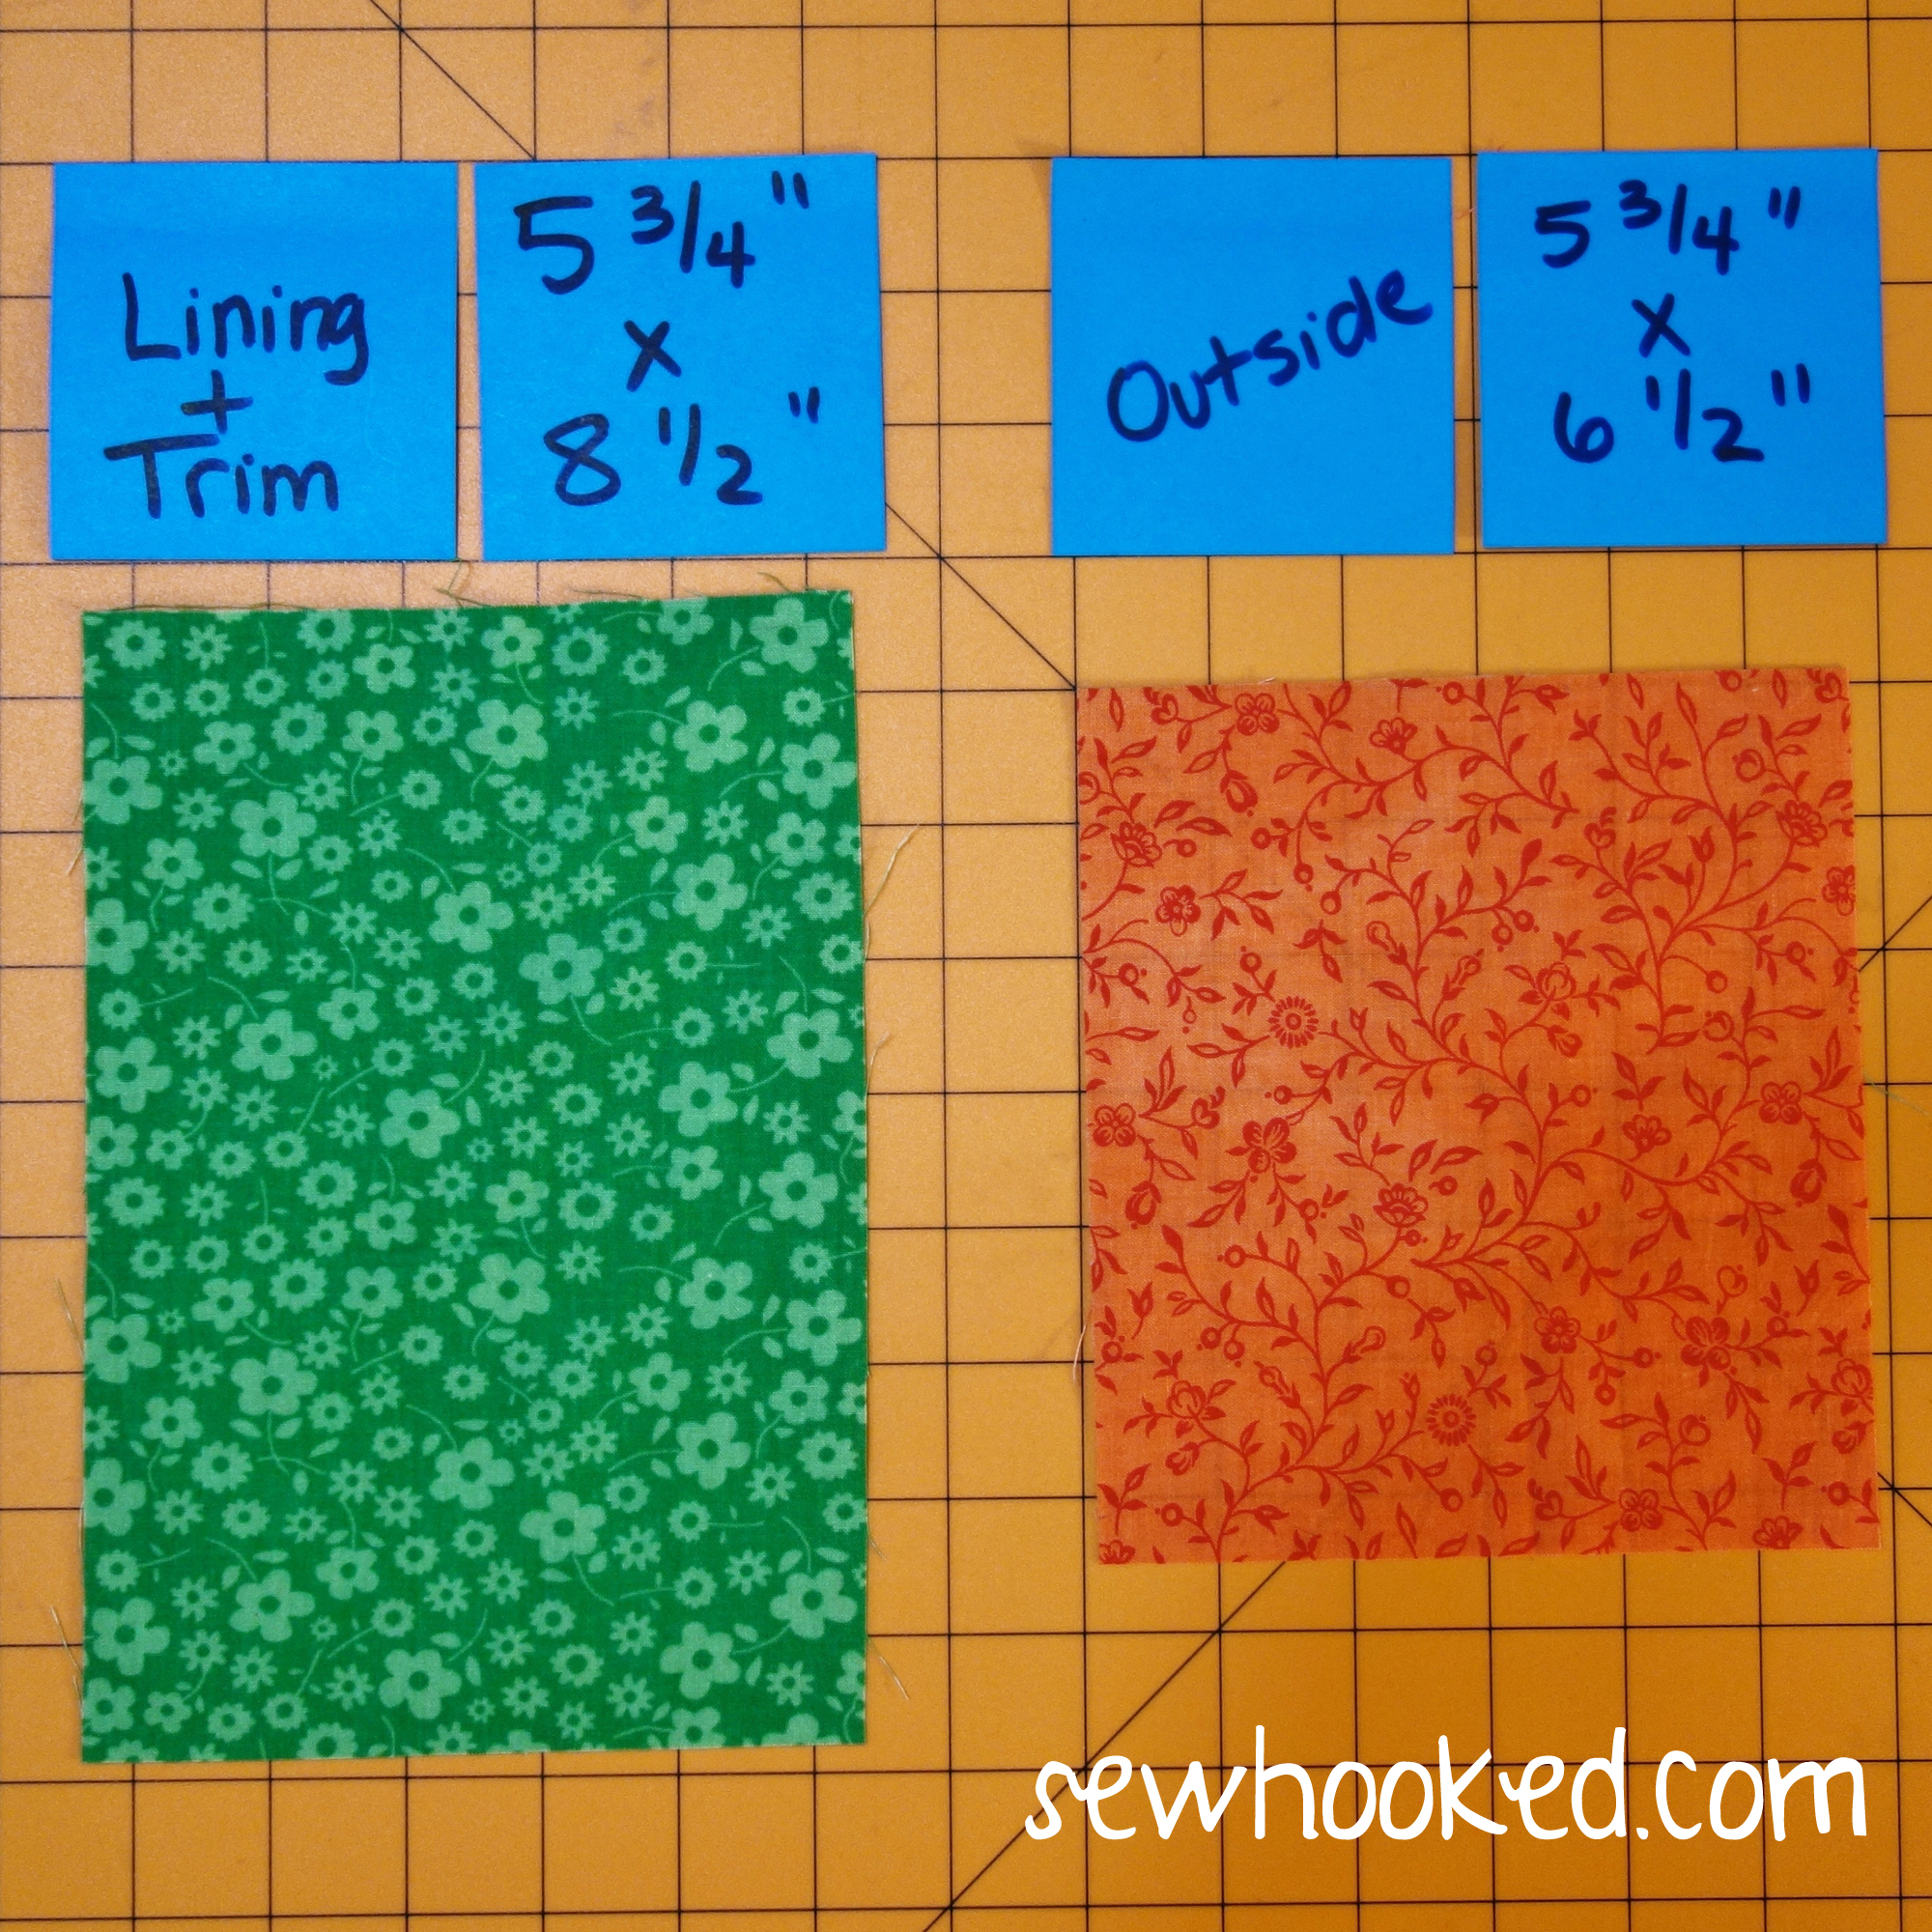 tissue-tutorial-2017-03-for-sewhooked-1